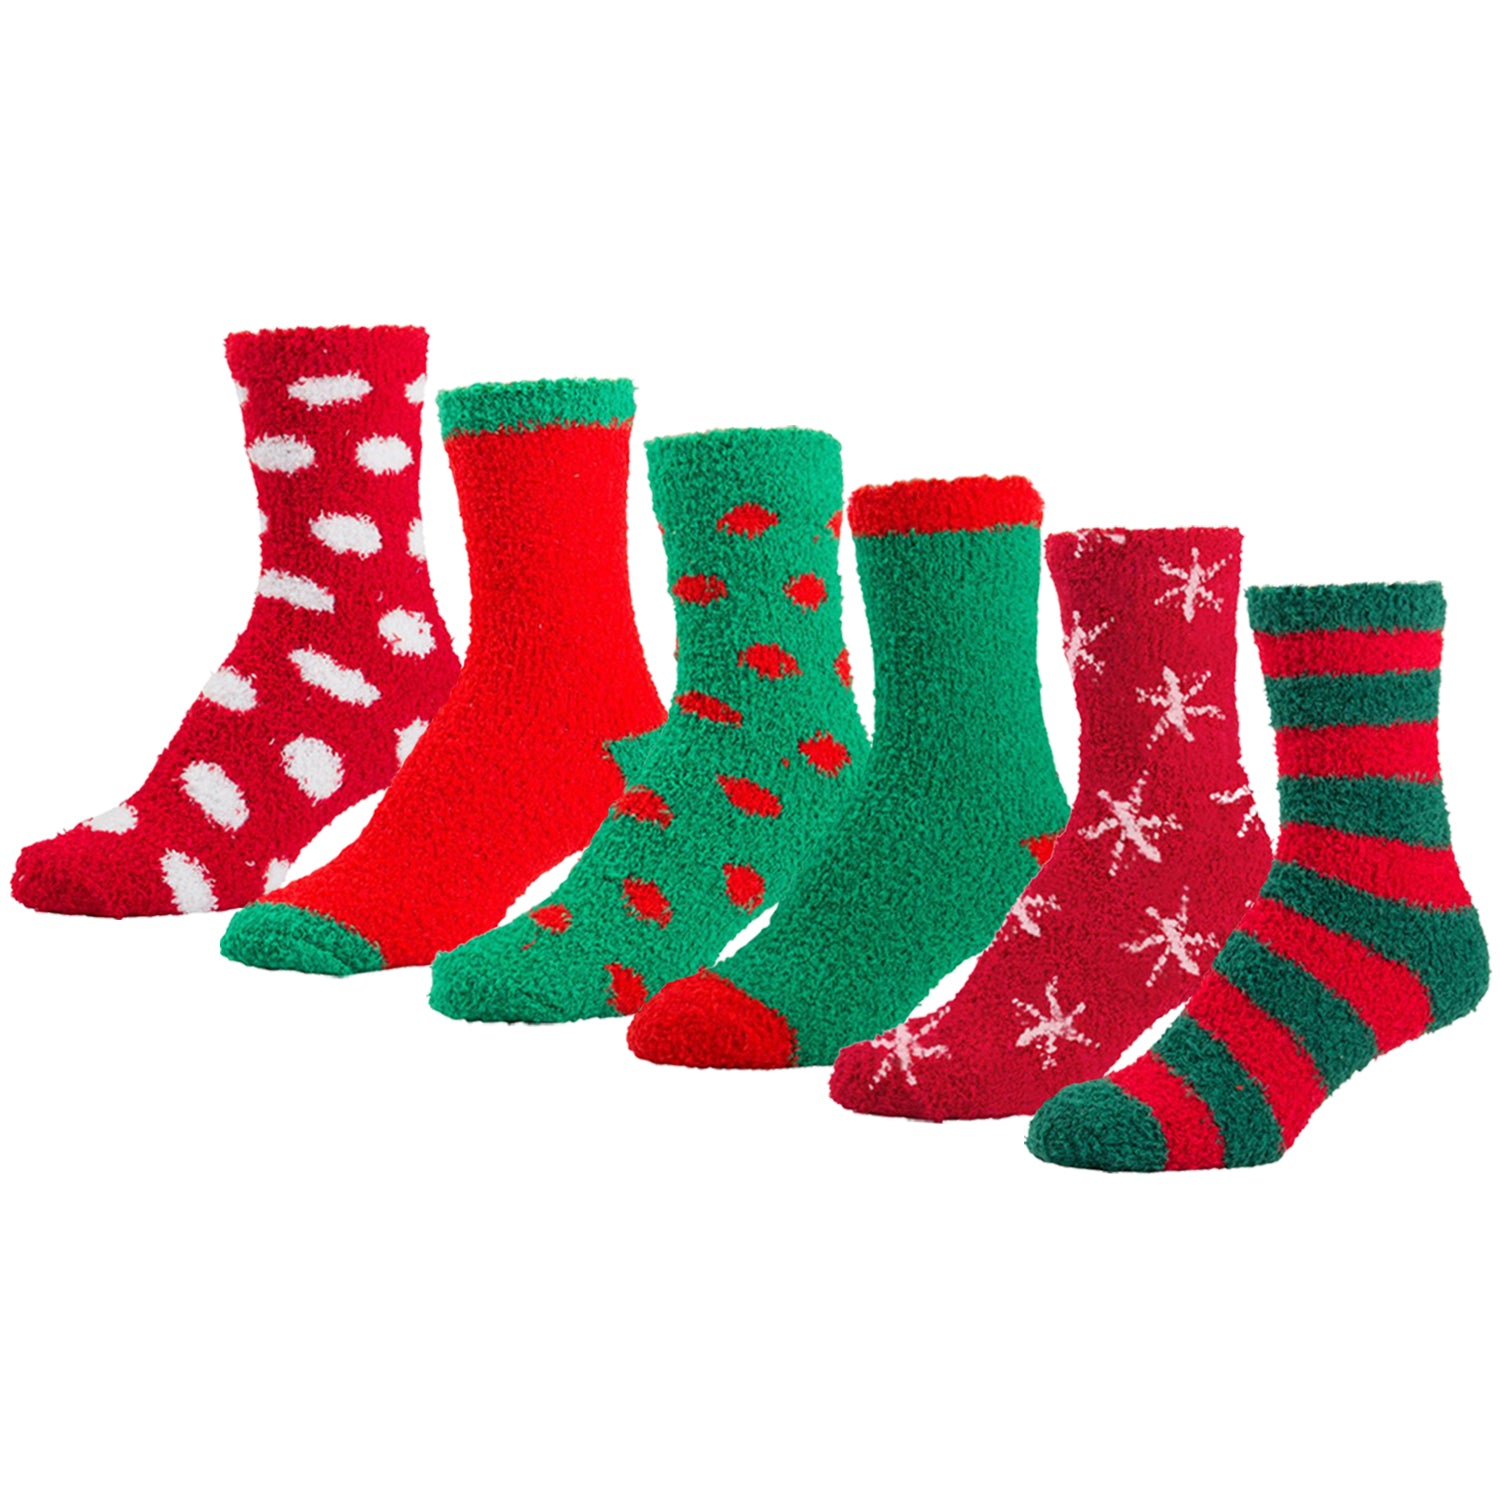 Women's Fuzzy Plush Holiday Slipper Socks, Assorted Fuzzy Christmas, Size 9-11